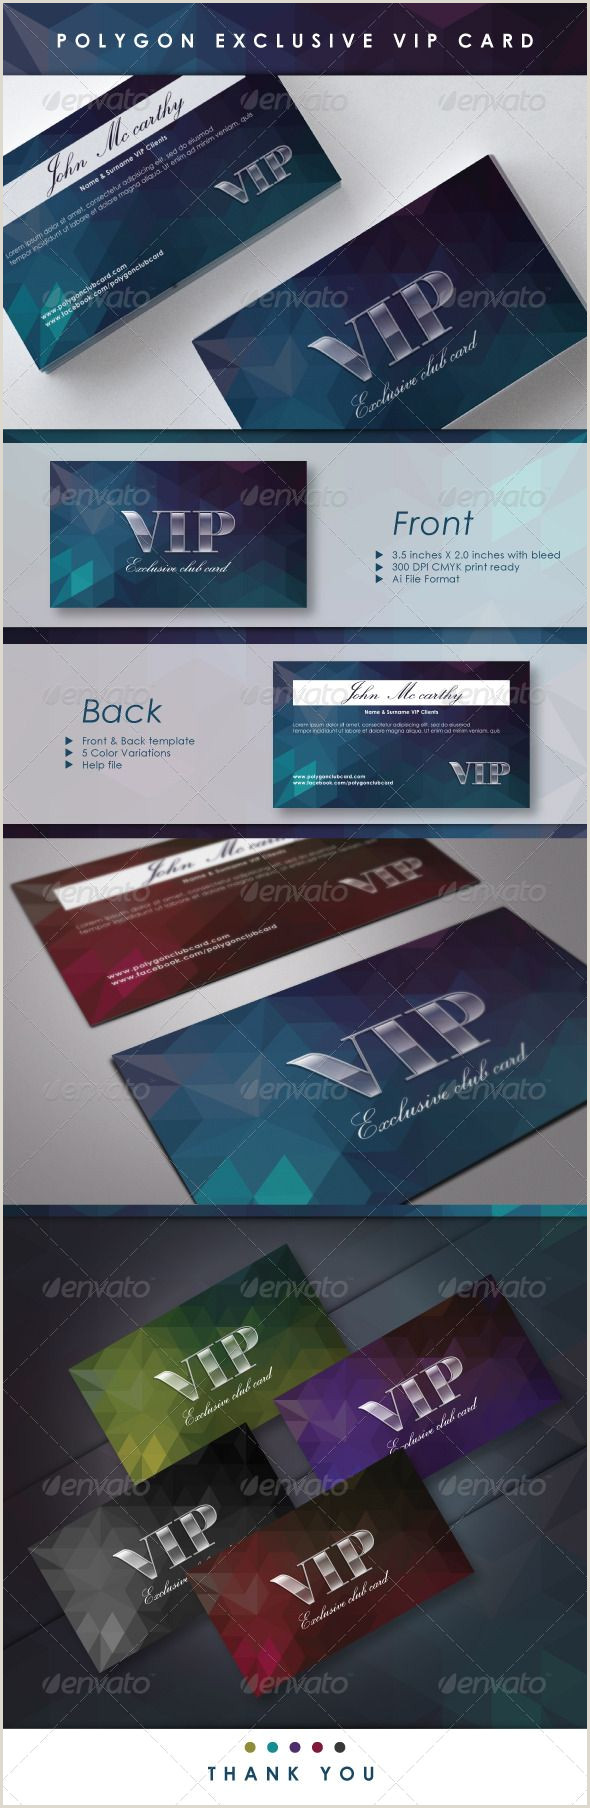 Credit Card Looking Business Cards Polygon Exclusive Vip Card Graphicriver